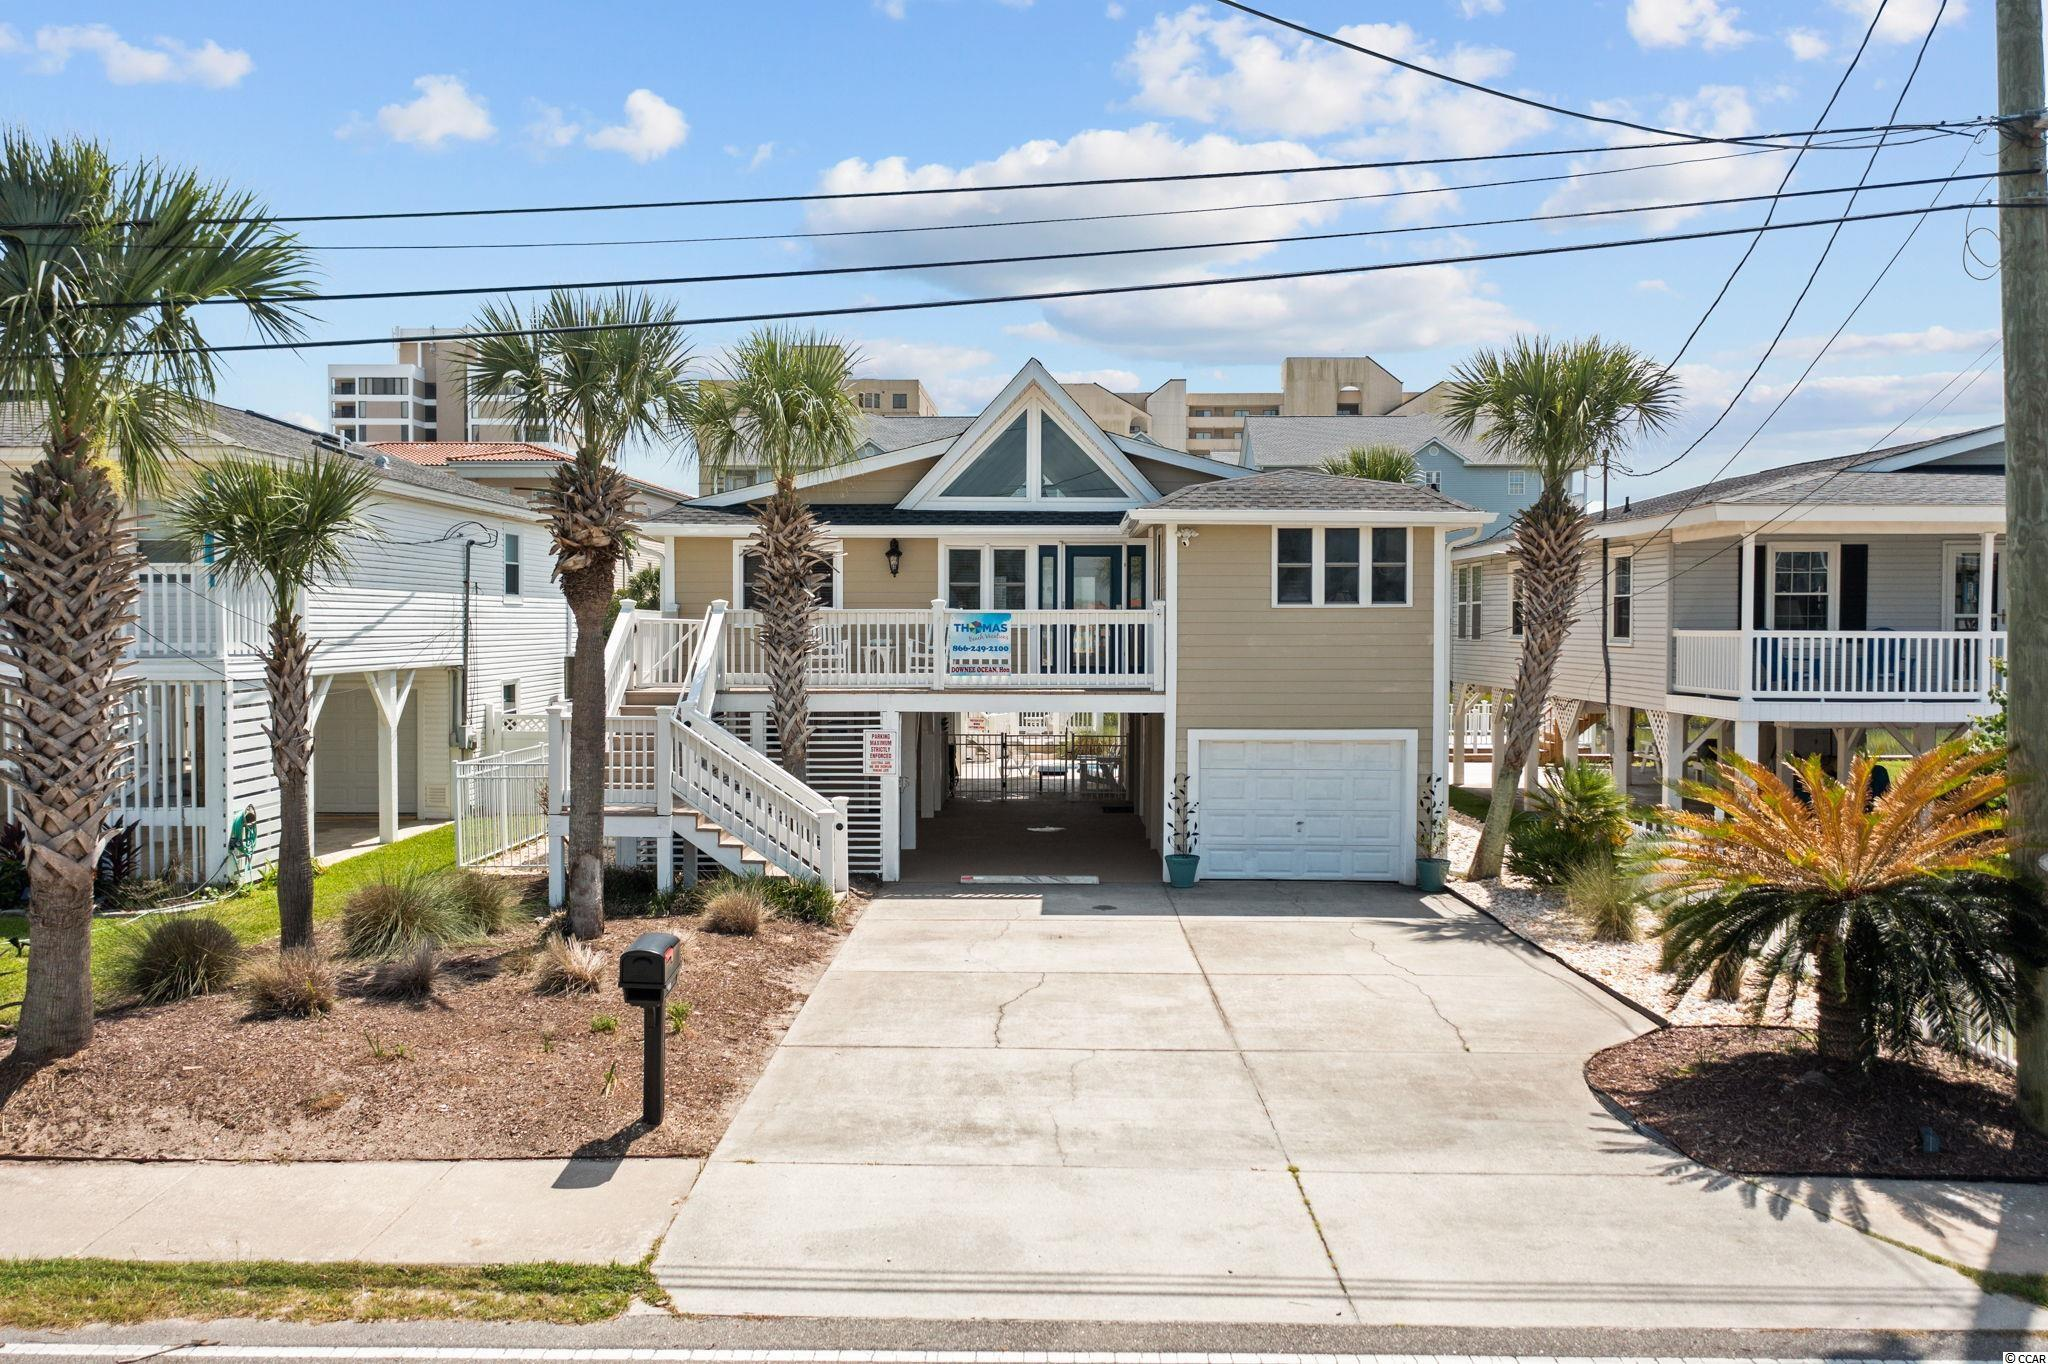 Channel front living at it's best!  This cozy, classic raised beach house has all of the traditional coastal character but has been fully renovated inside and out.  Prime Cherry Grove location, almost at the Pointe on the quiet end of the beach.  Upon entering the home, a large vaulted ceiling greets you and immediately gives you a comfortable and spacious feel with beam accents.  The interior is bright and white, accented with blonde hardwood flooring in the main living areas.   A combination of full view patio doors and windows line the front and back of the home to allow in maximum light and provides continual water views.  The kitchen of the home has been updated with a classic modern feel.  Black granite countertops are paired with crisp white semi custom cabinetry and stainless appliances.  A convenient island provides additional workspace or a spot to gather and eat.  A pale turquoise blue glass tile backsplash adds just a touch of color.  There is plenty of storage space in the kitchen with a pantry, owners closet and utility area.  The floorplan is a mirror image with two bedrooms and hall bath on each side of the home.  Both bathrooms have been substantially upgraded with new vanities, fully tiled surrounds, granite counter tops, glass enclosures, plumbing fixtures and wall colors.  The bedrooms have a textured Berber style carpet and offer plenty of closet space.  Both bedrooms at the rear of the home allow patio door access to the expansive deck.  It's the perfect spot to spend your time listening to the ocean waves and feel the breeze.  Throughout the home added touches and upgrades are apparent.  The trim work has been changed to a craftsman style, new door hardware added and light switches were updated.  The home comes fully furnished including all appliances and electronics.  A new roof and gutter system was added in 2021, the HVAC was replaced in 2017.  The home also is equipped with a Ring camera in the front and rear and wifi keypad door locks mak